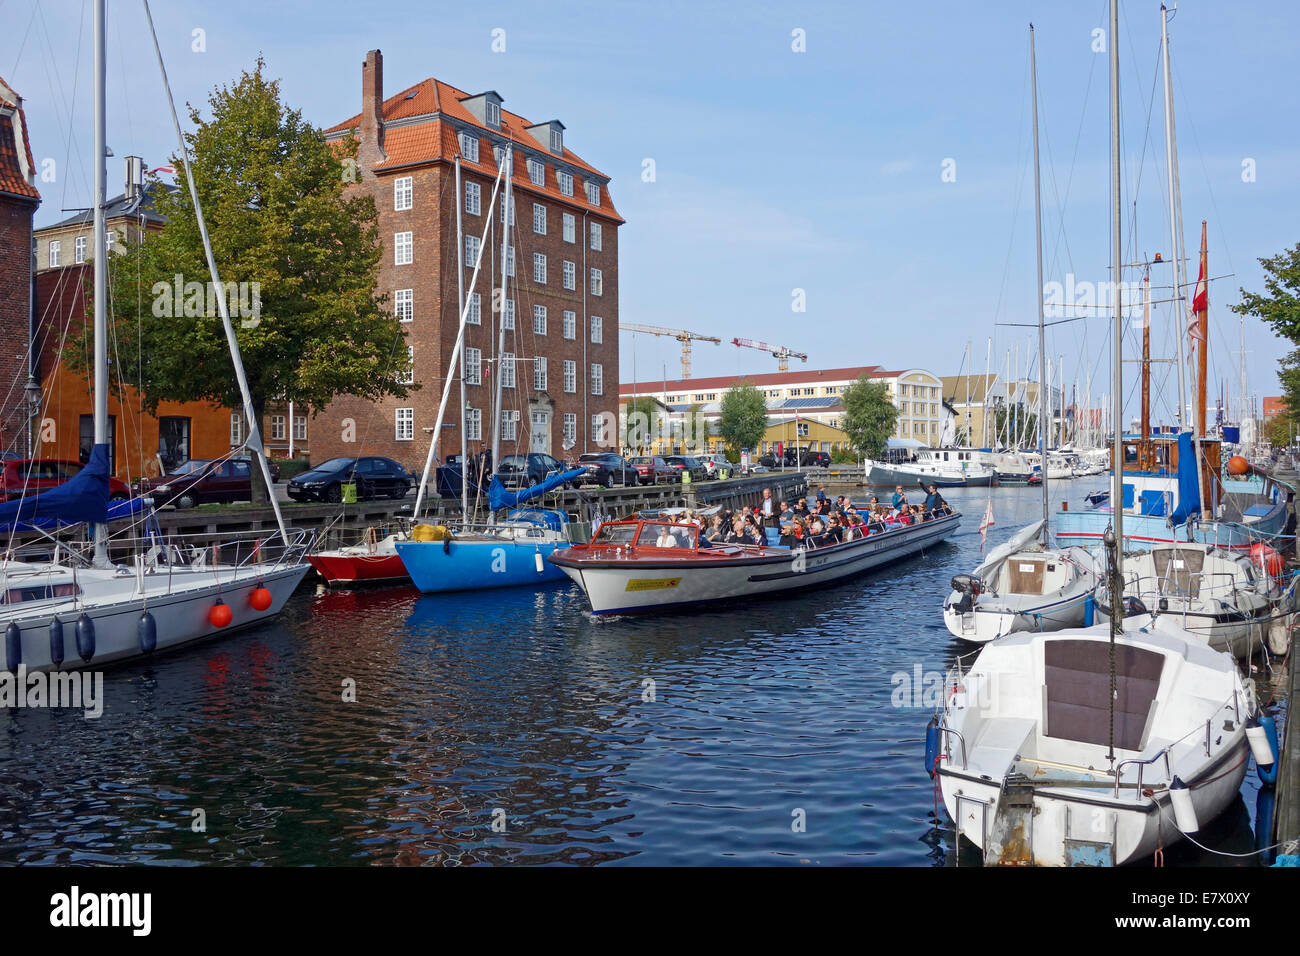 Christianshavn Canal in Copenhagen Denmark with vessels along both quays and canaltours harbour cruise vessel passing - Stock Image